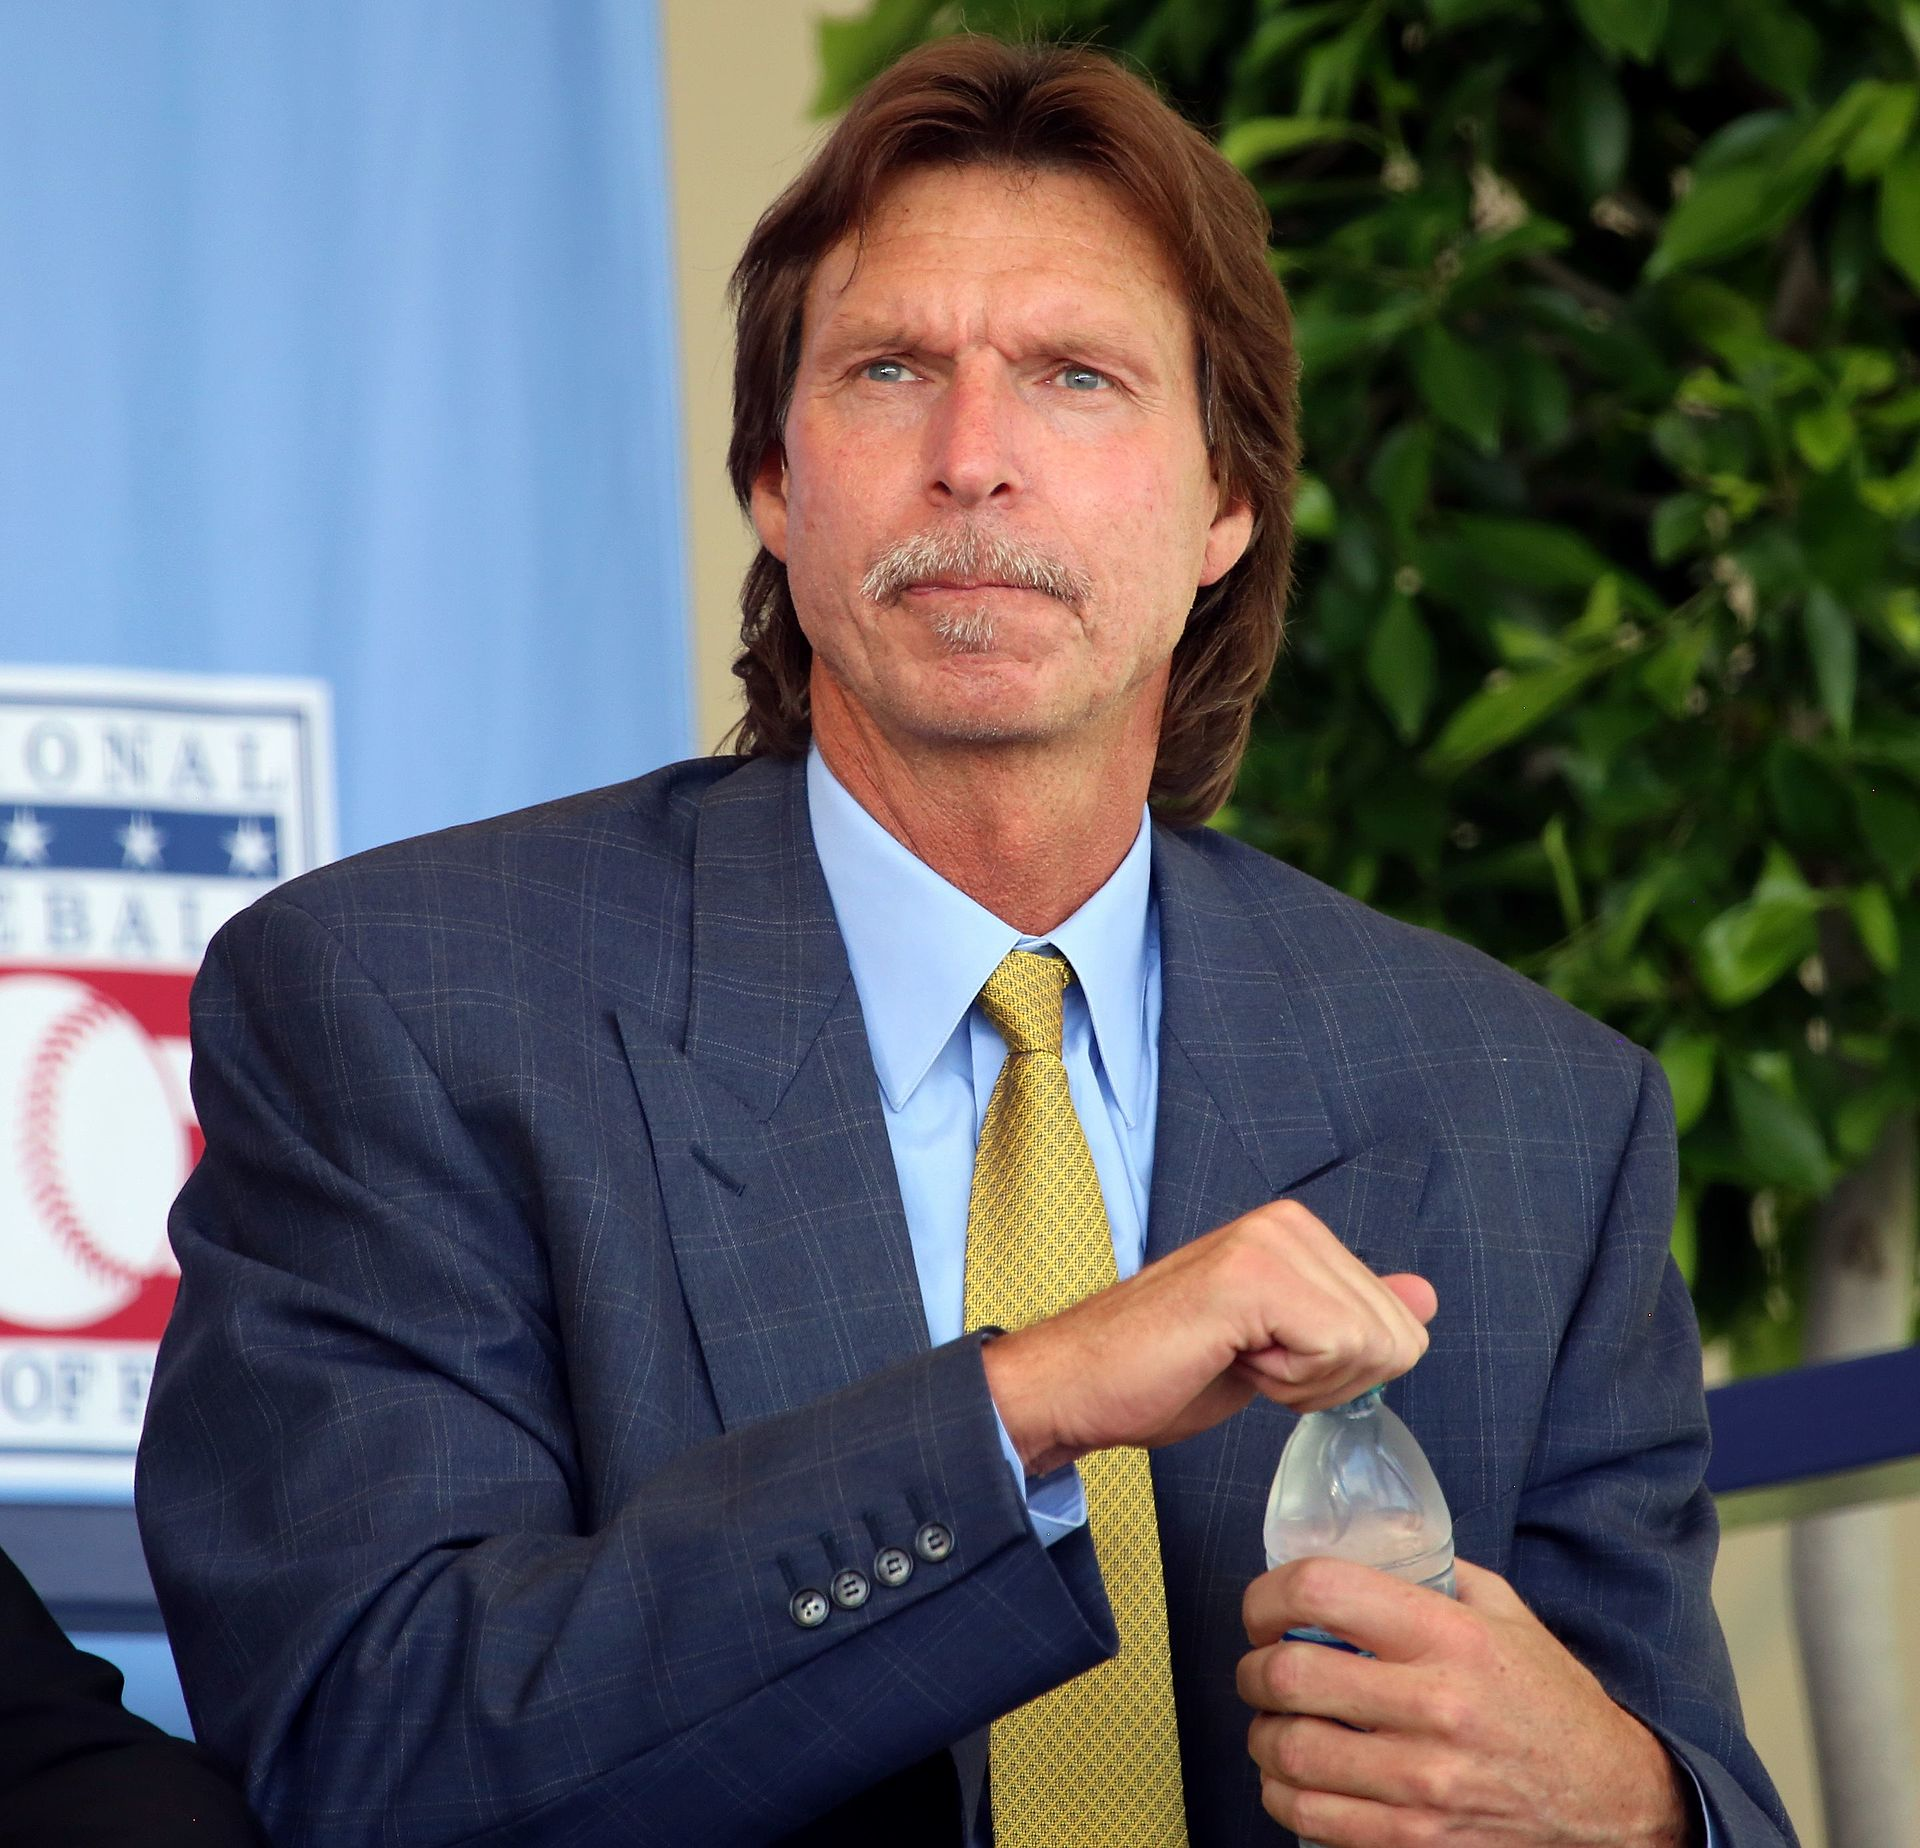 sports-randy-johnson-remporte-le-cy-young-pour-la-cinquieme-fois/1920px-randy-johnson-2016-jpg.jpeg